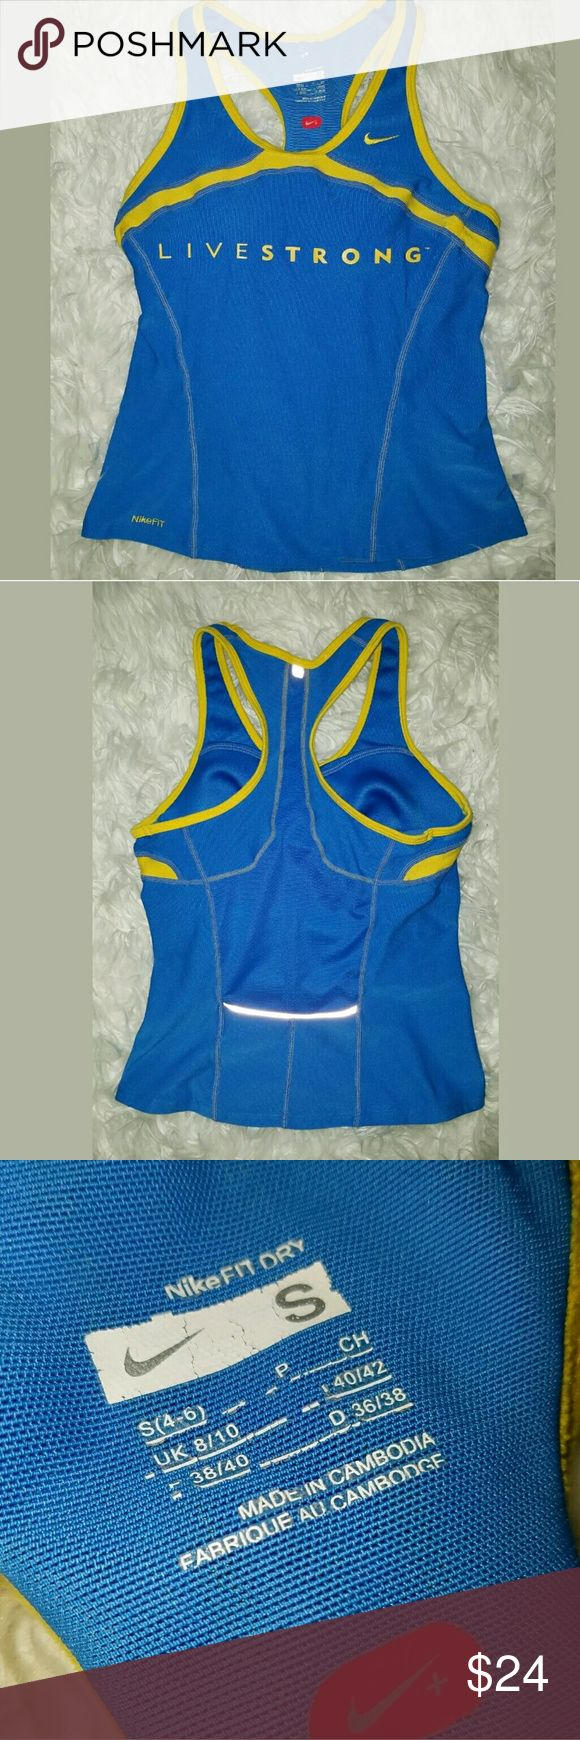 Nike Livestrong Racerback Fitness Athletic Tanktop Nike Livestrong Racerback Fitness Athletic Tanktop Blue Yellow Small  Excellent used condition.  14 inches pit to pit. 19 inches long.  LB Nike Tops Tank Tops